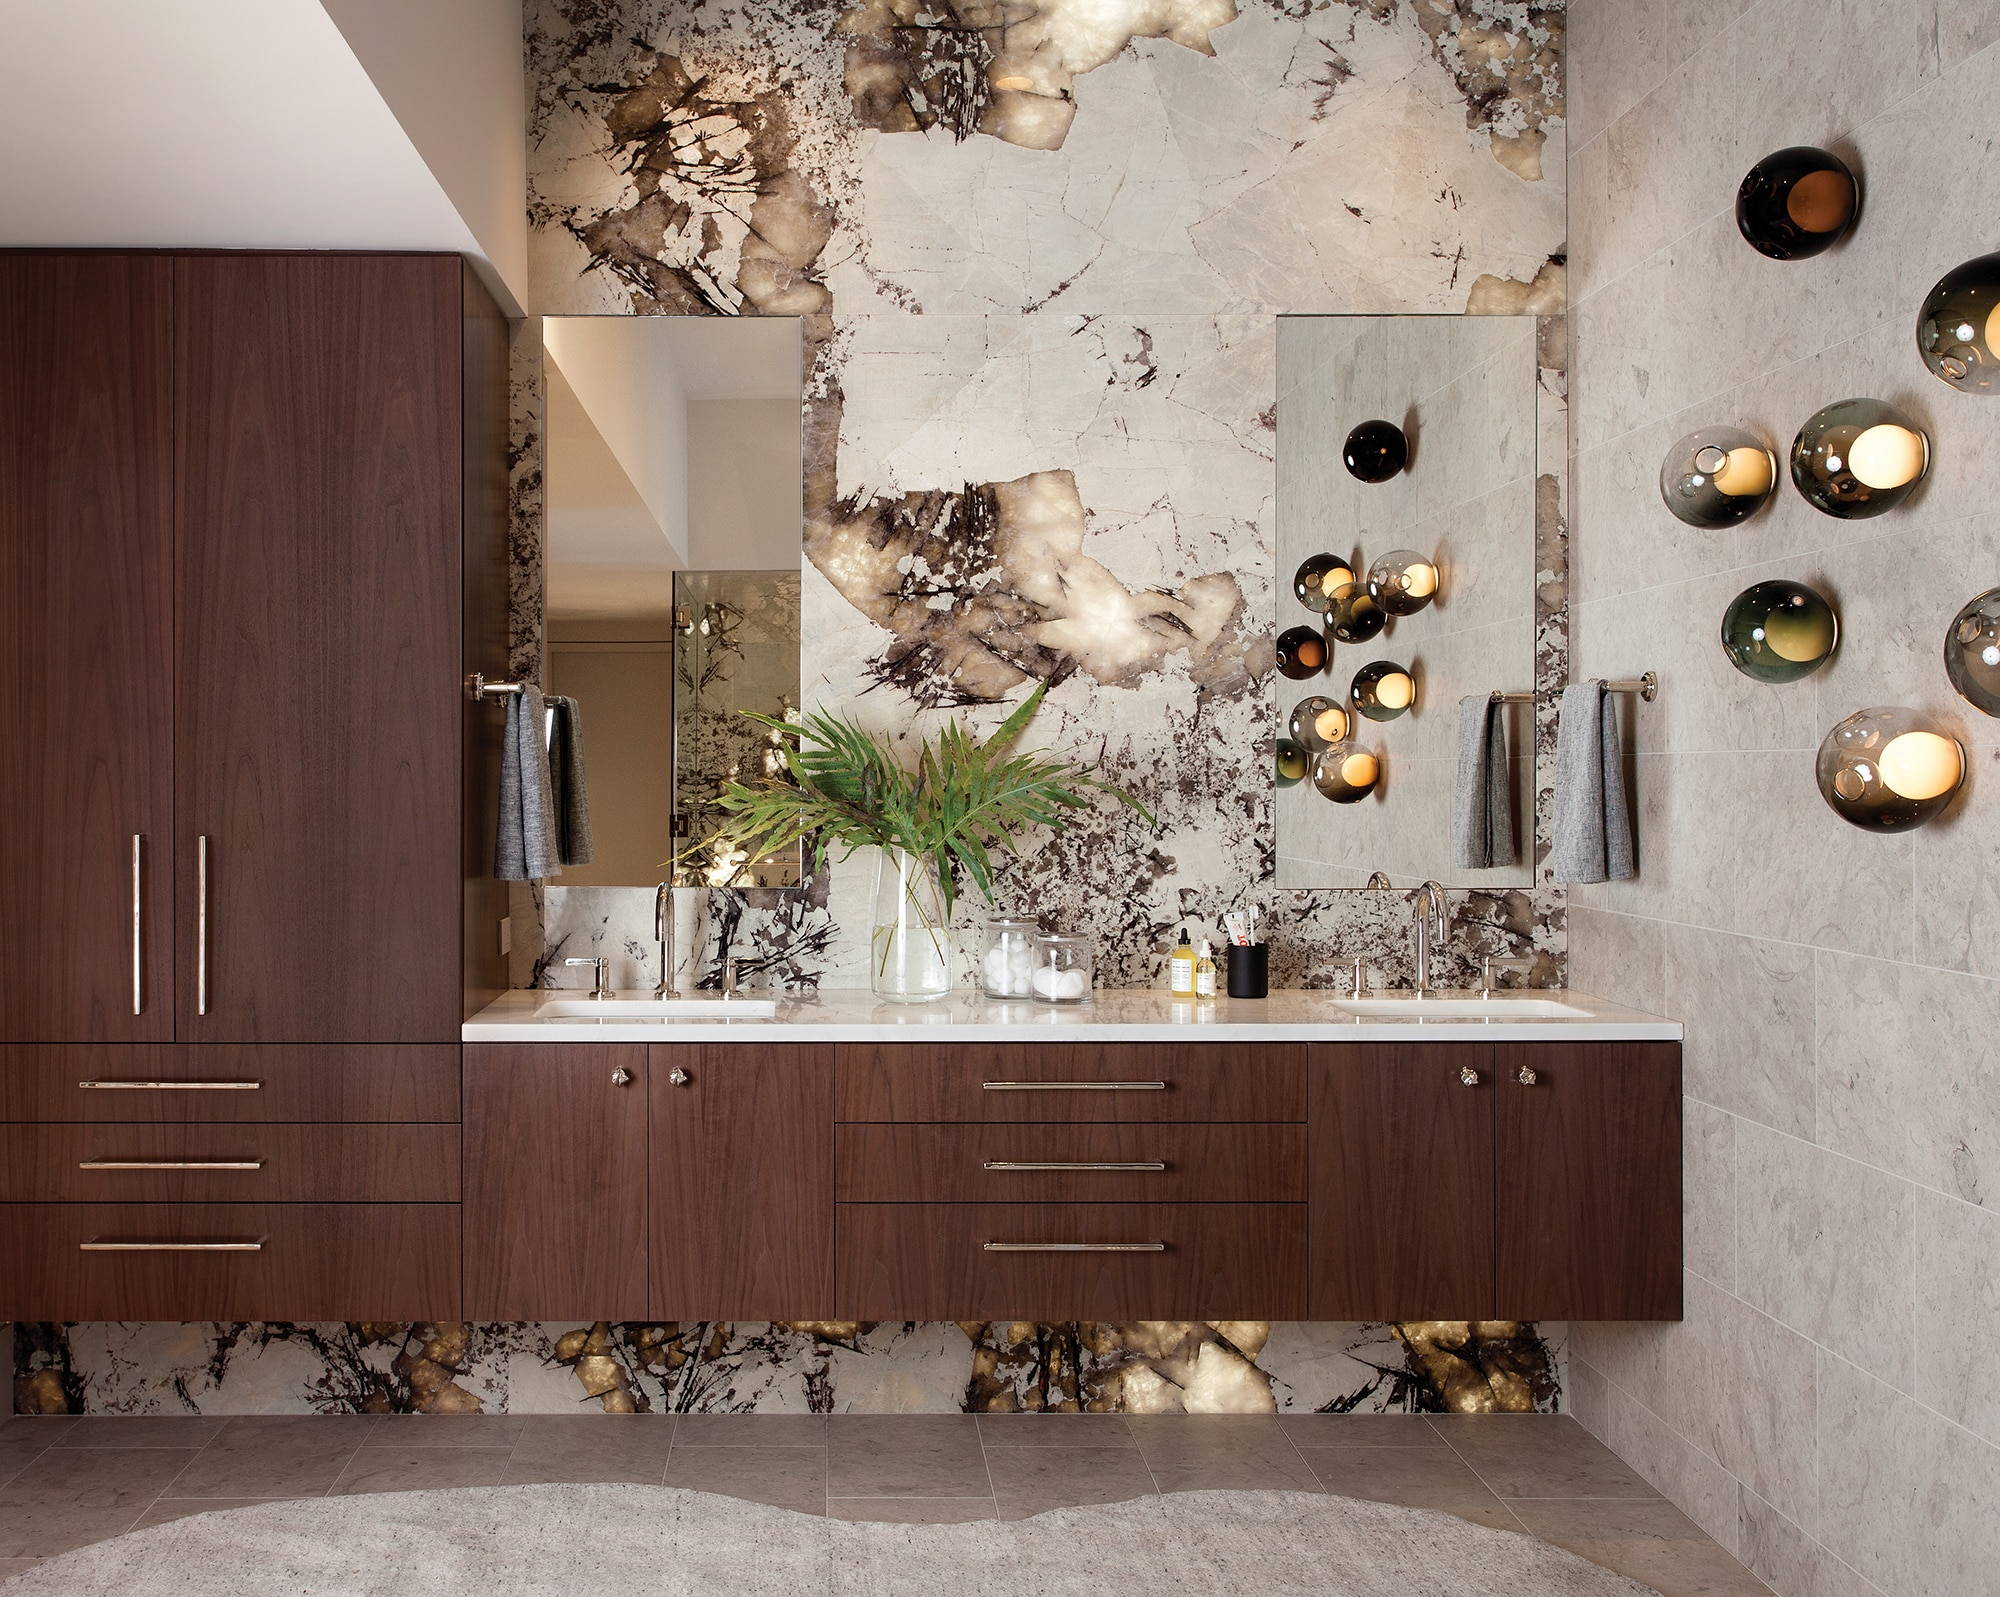 The owner's bathroom suite features a backlit glowing stone wall.